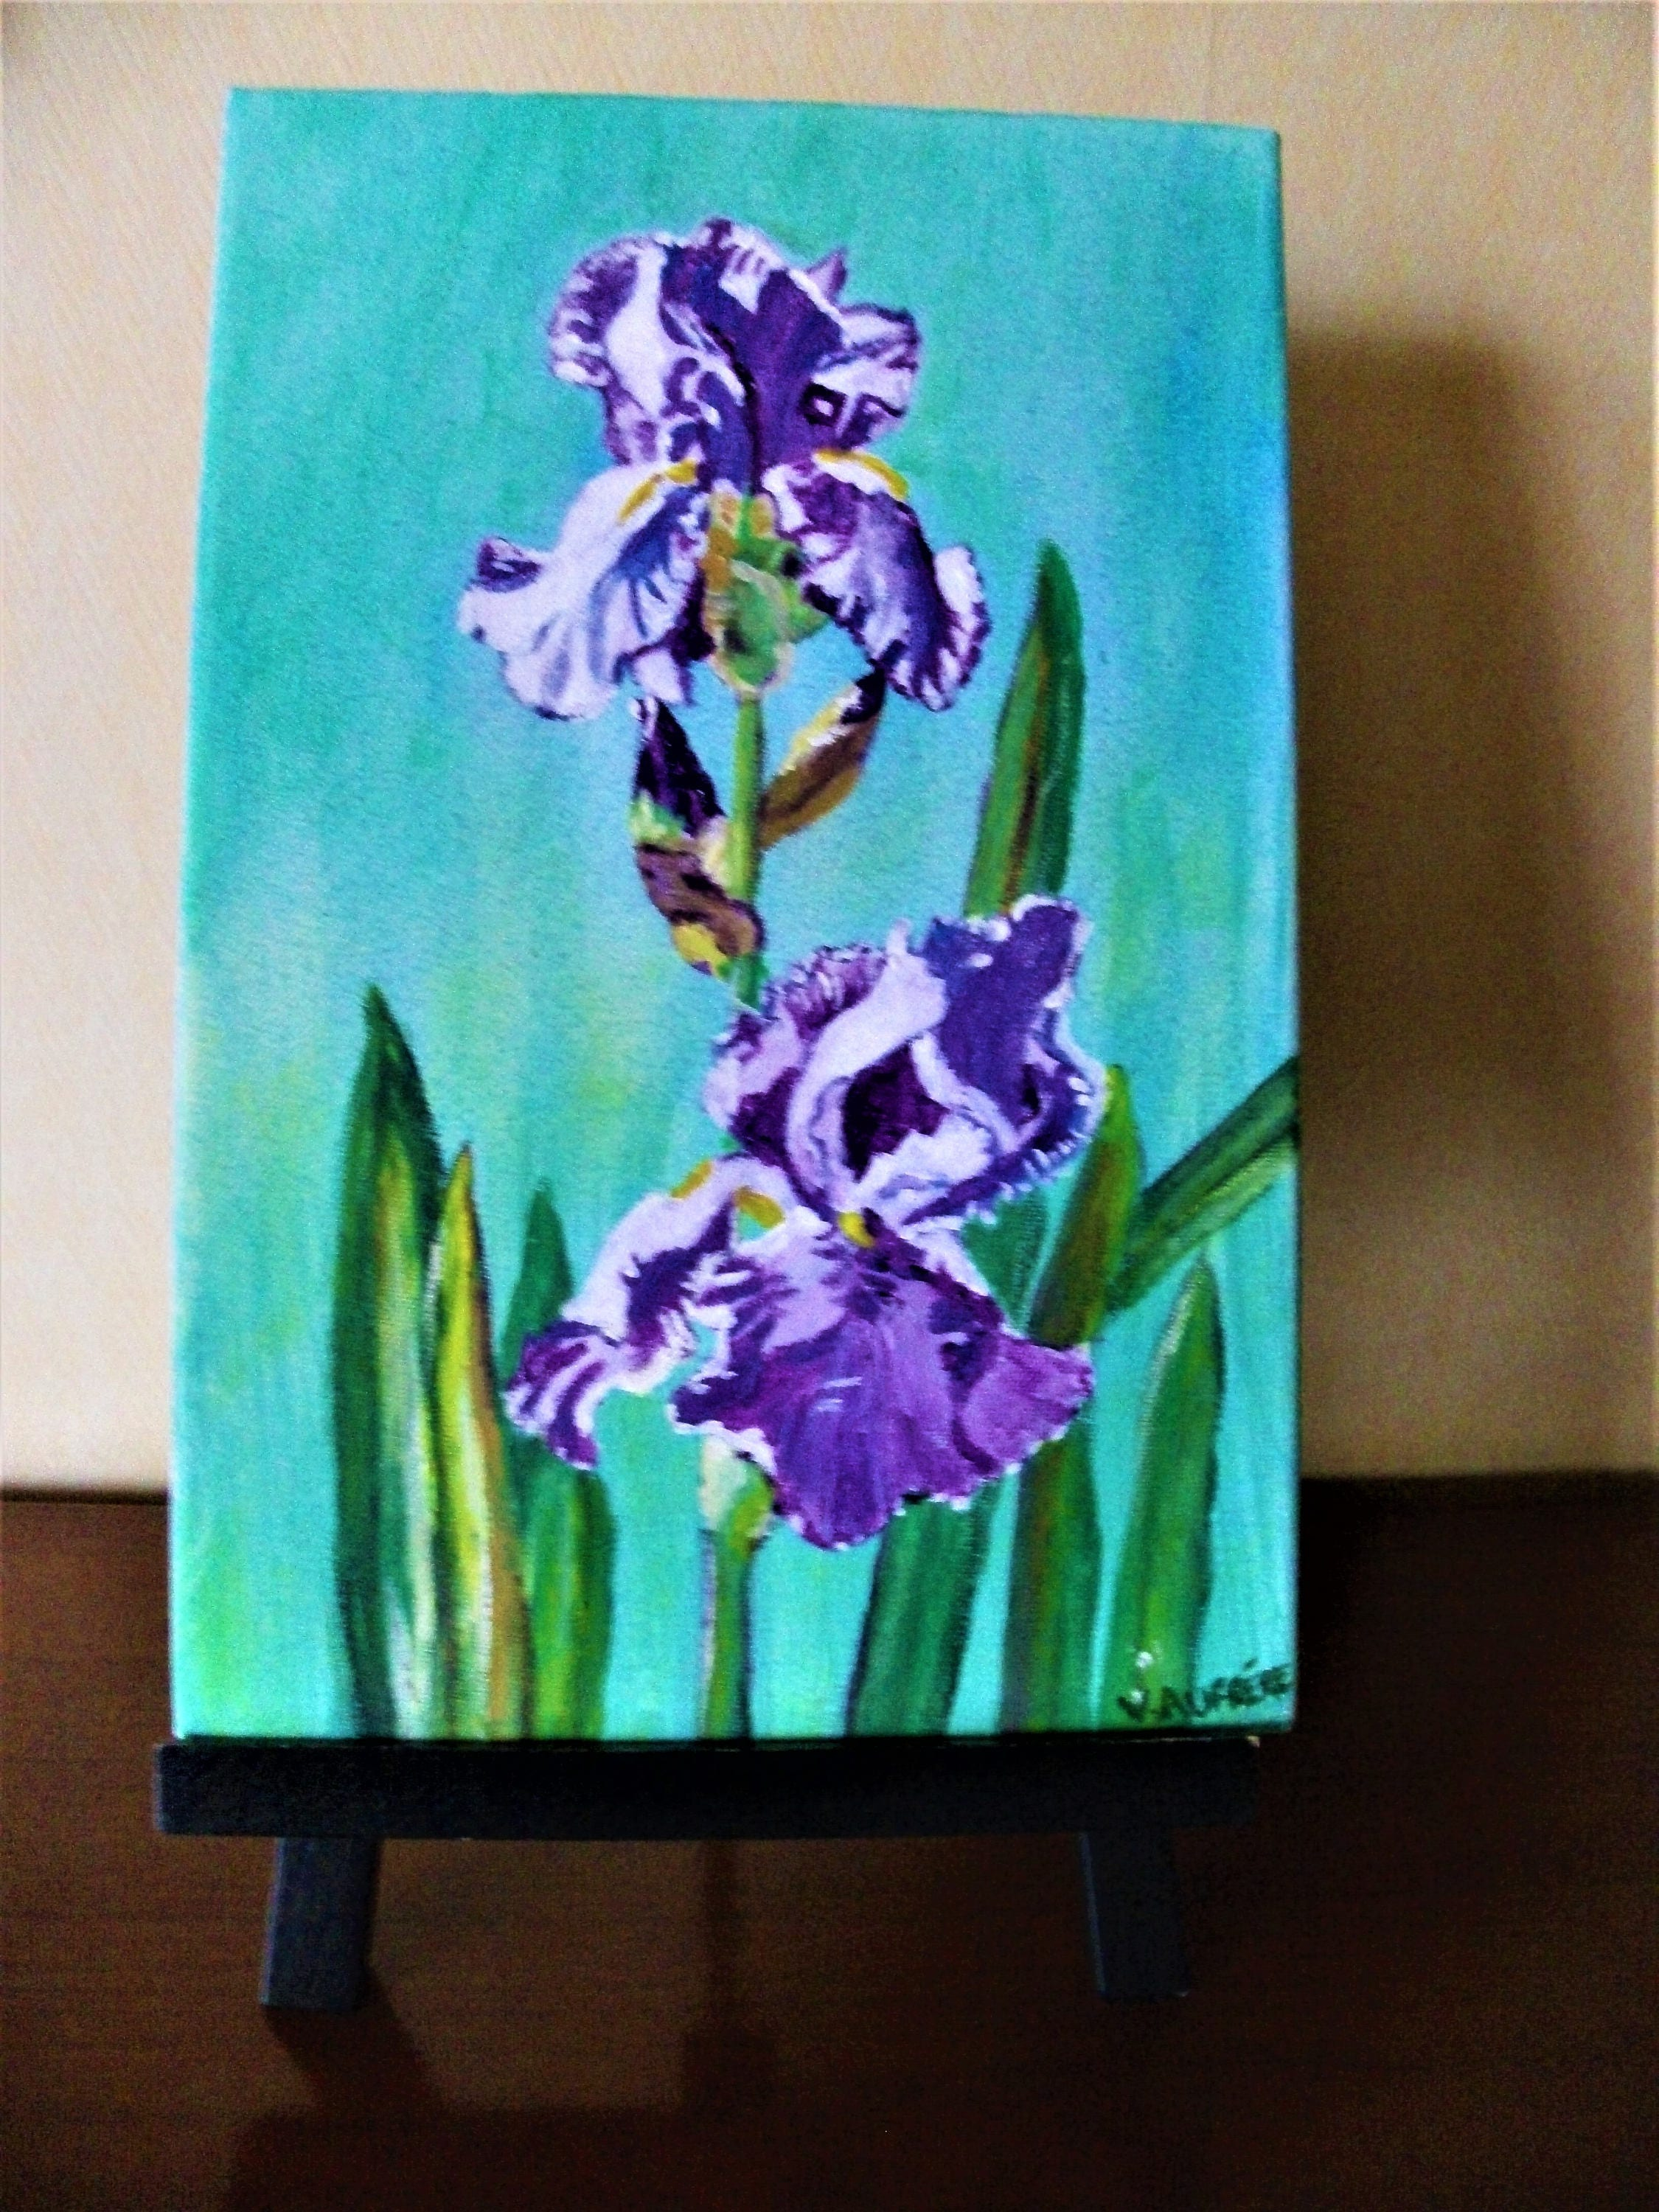 Iris of the garden acrylic paint flowers pictureboard description acrylic paint iris izmirmasajfo